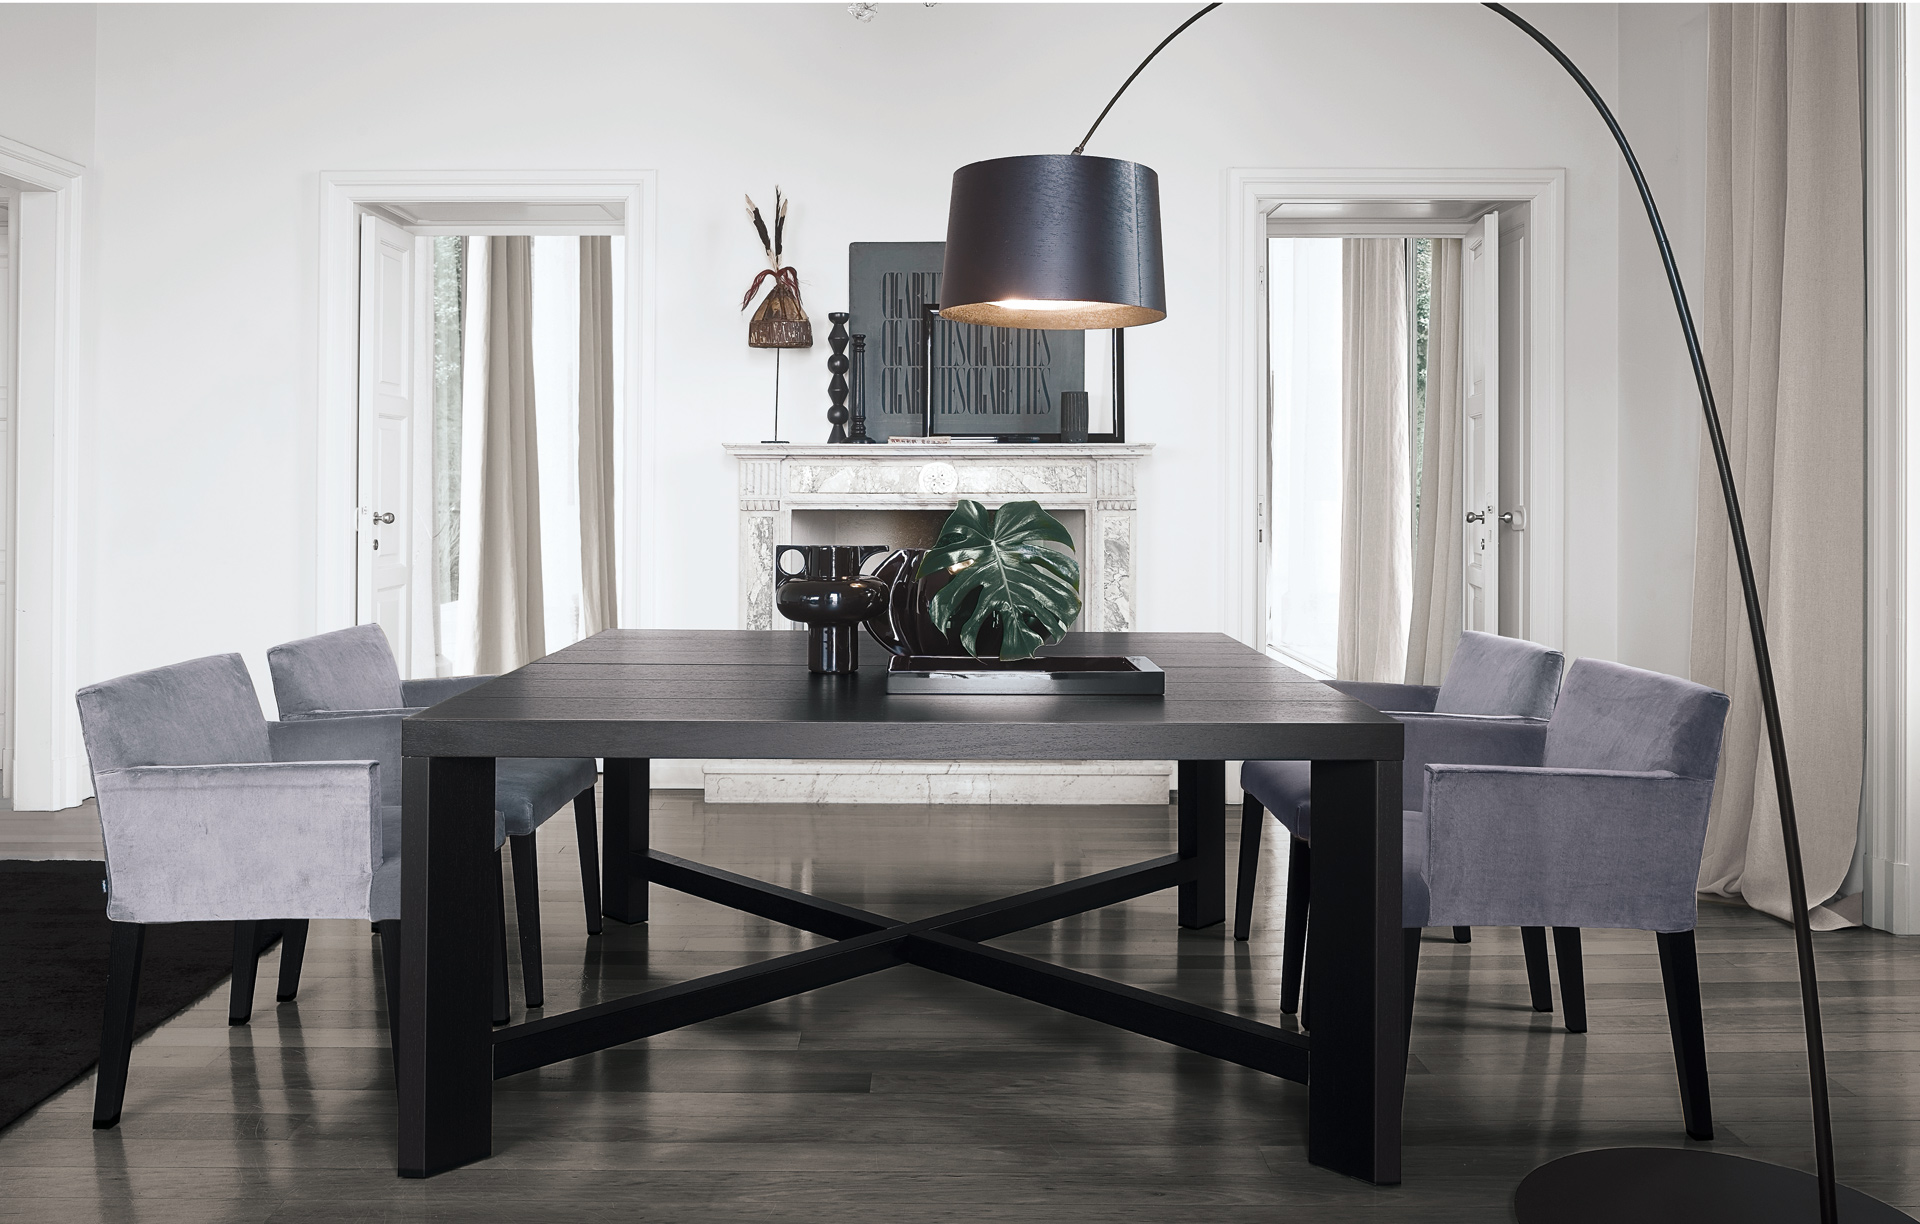 Modern luxury furniture by richlin